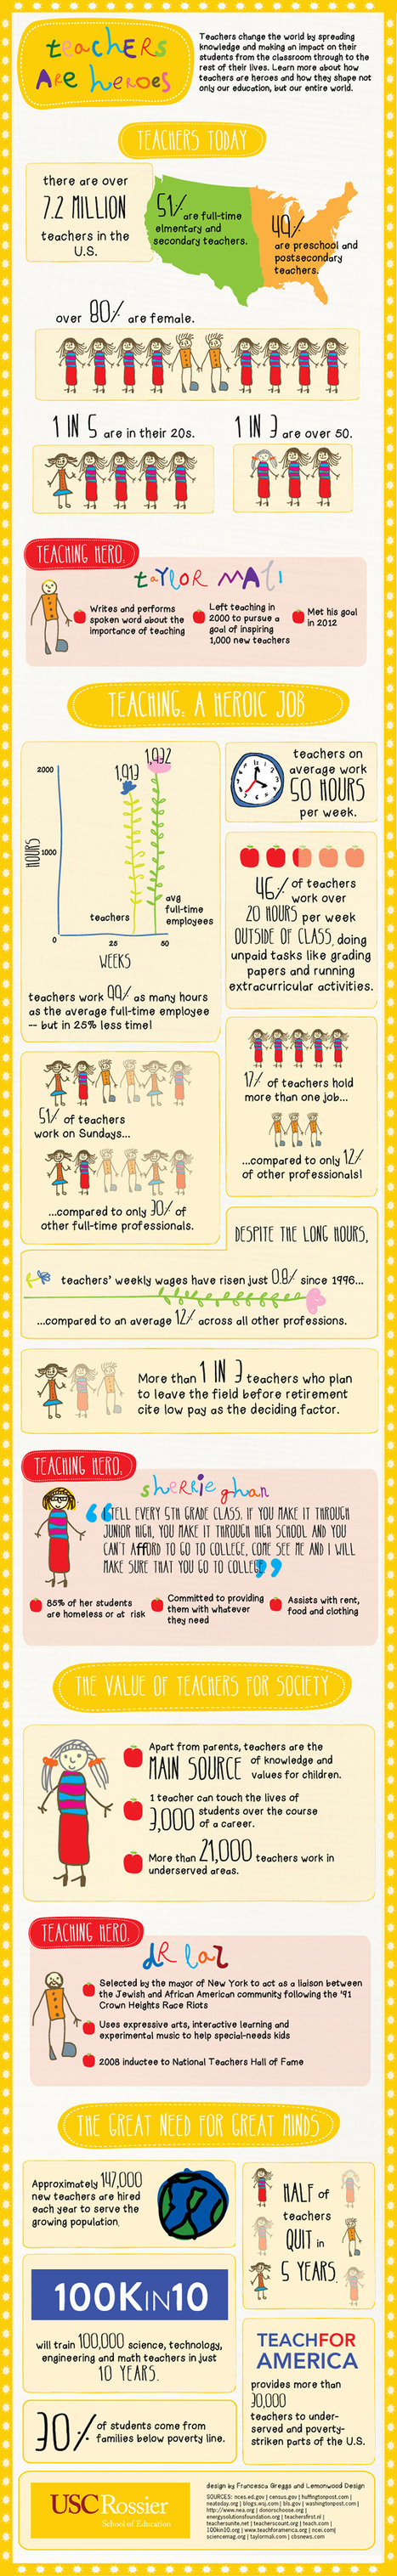 Educational Technology Guy: Teachers are Heroes - infographic on what teachers do | Education-Caitlin | Scoop.it